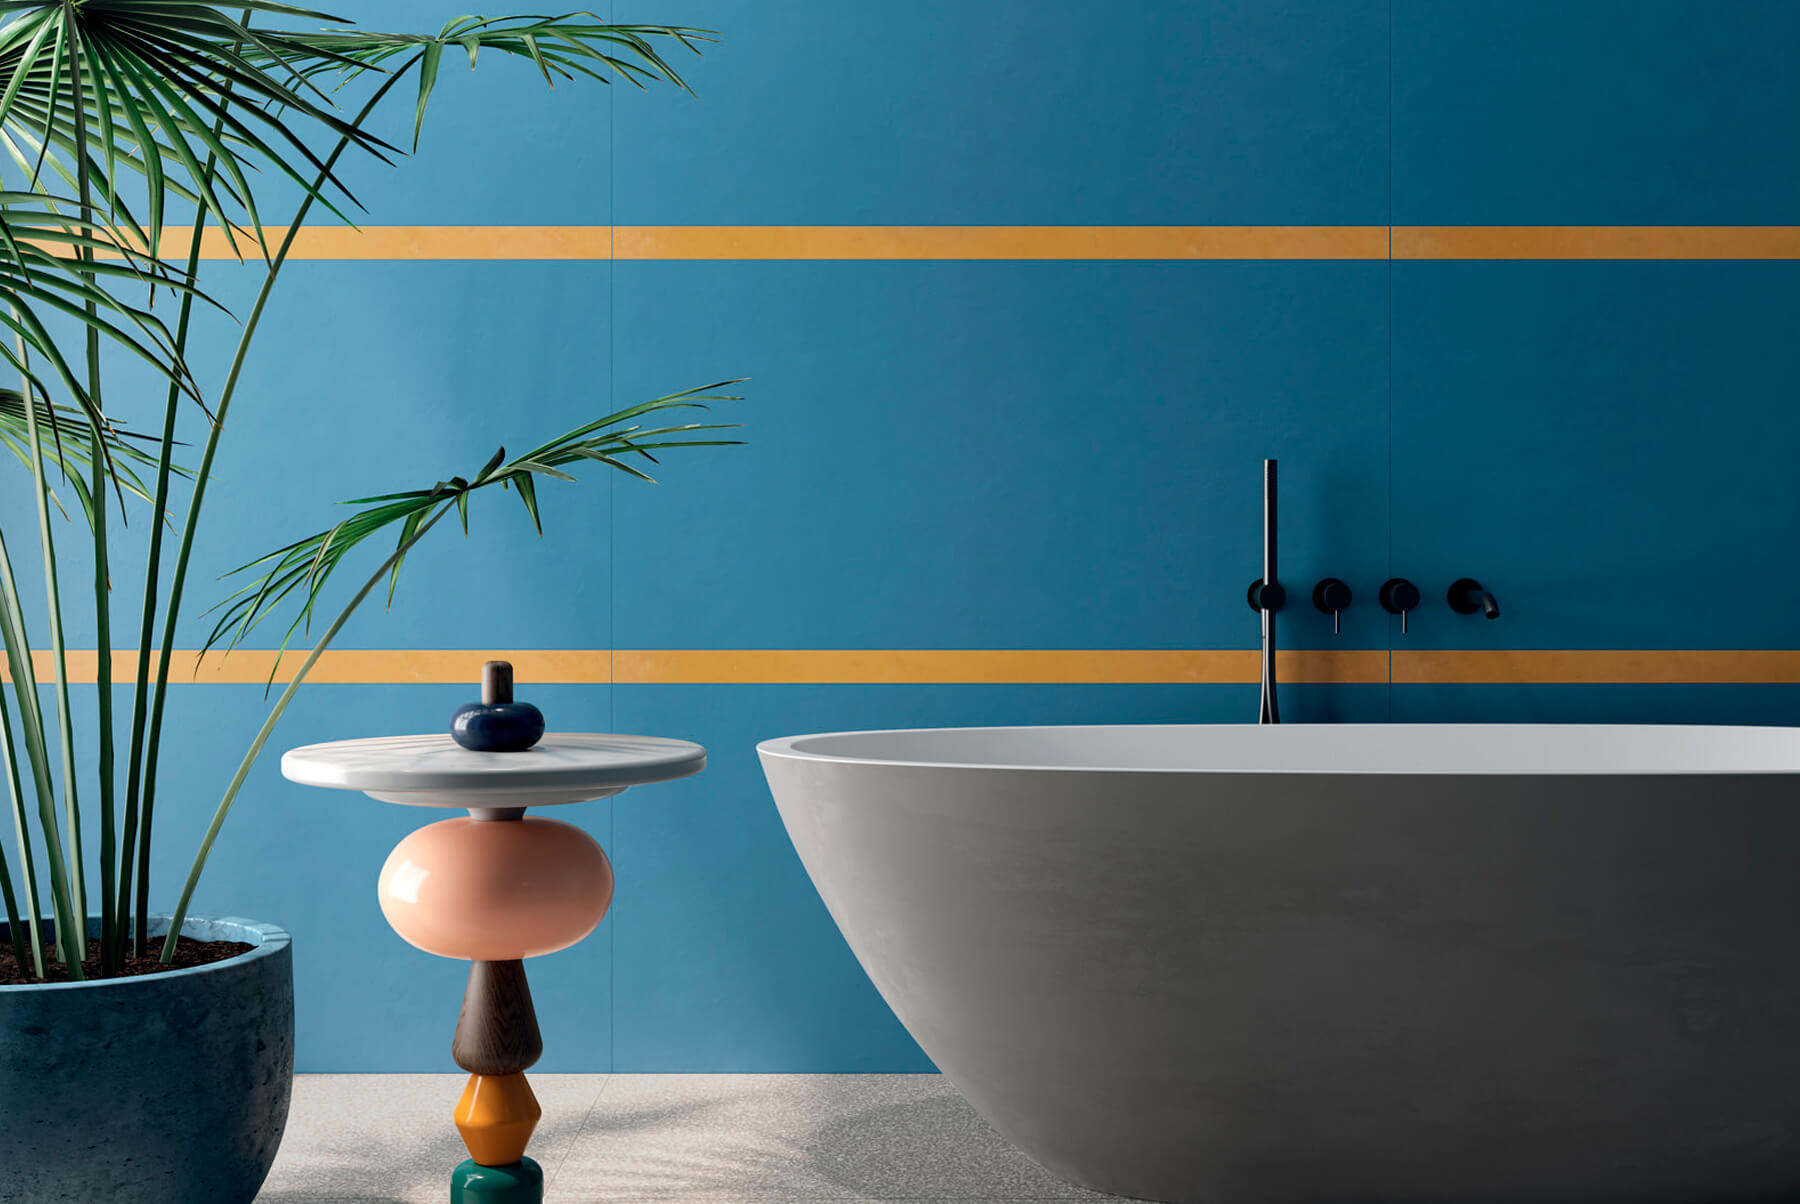 TILES-WIDE-&-STYLE-MINI-INSET-1-1800x1204